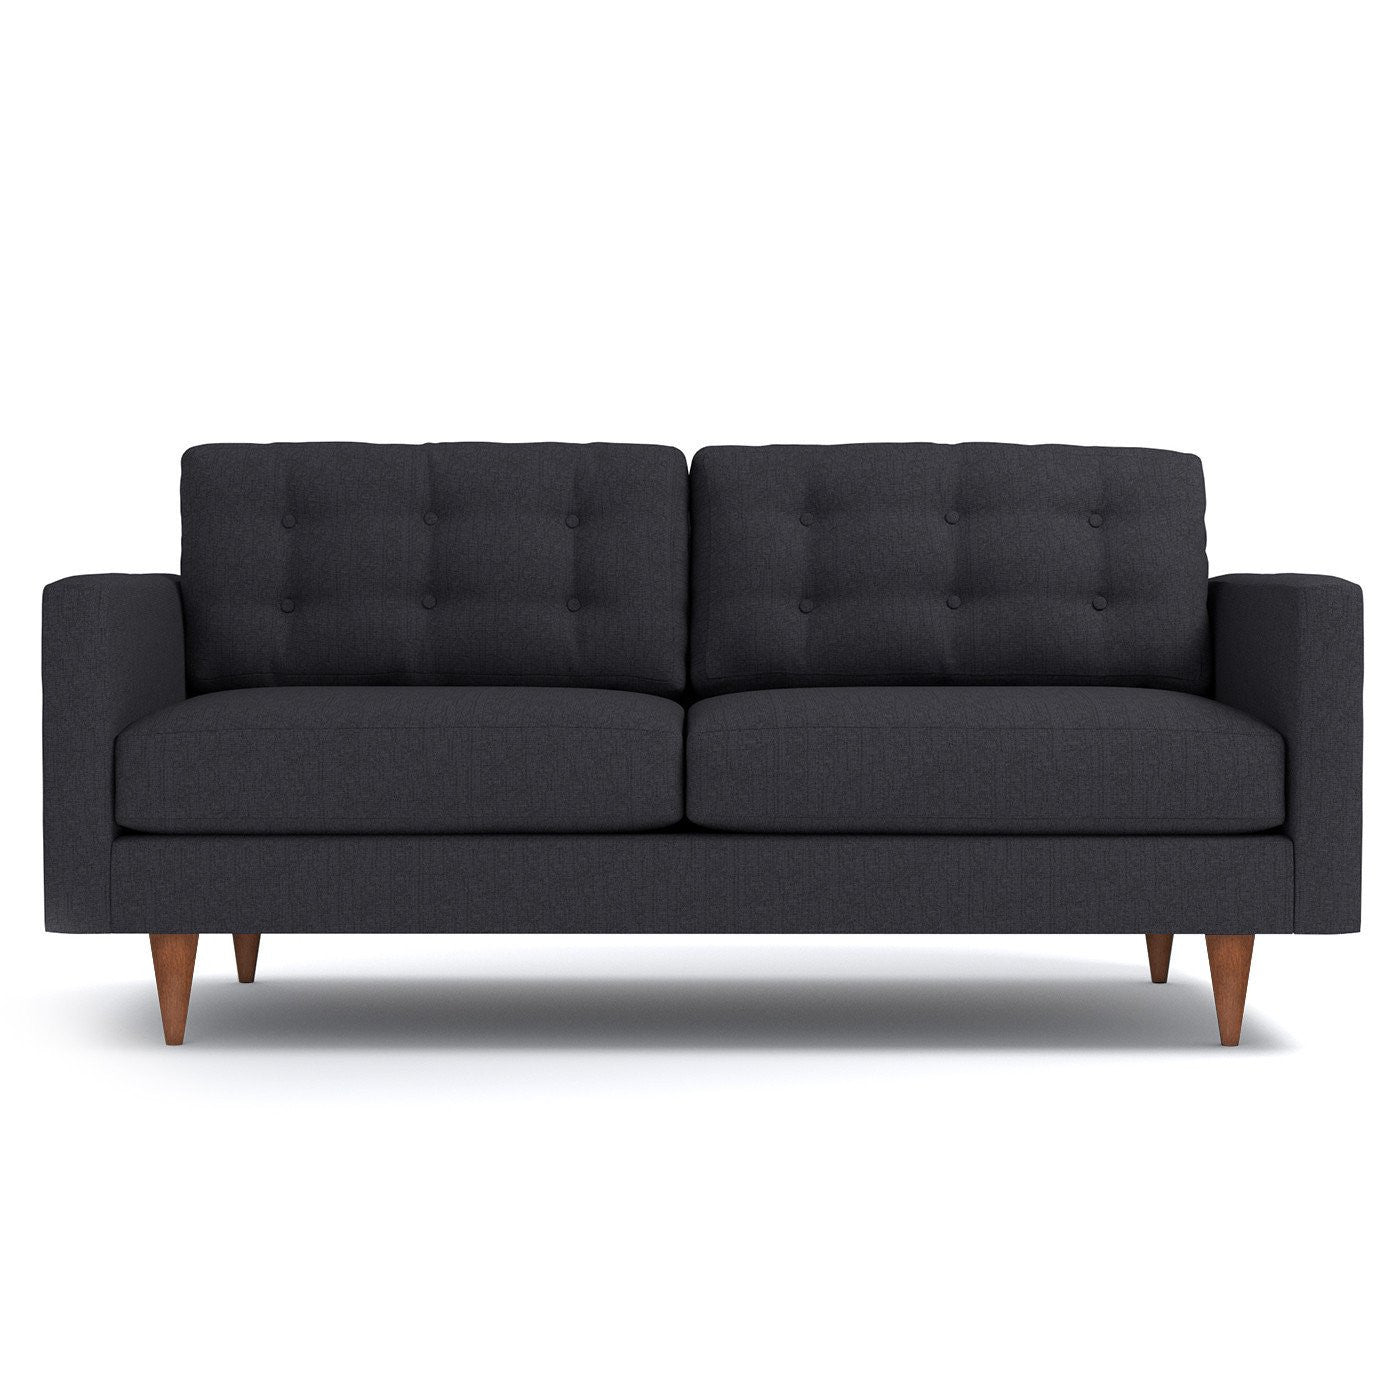 Logan Apartment Size Sofa - Choice of Fabrics - Apt2B